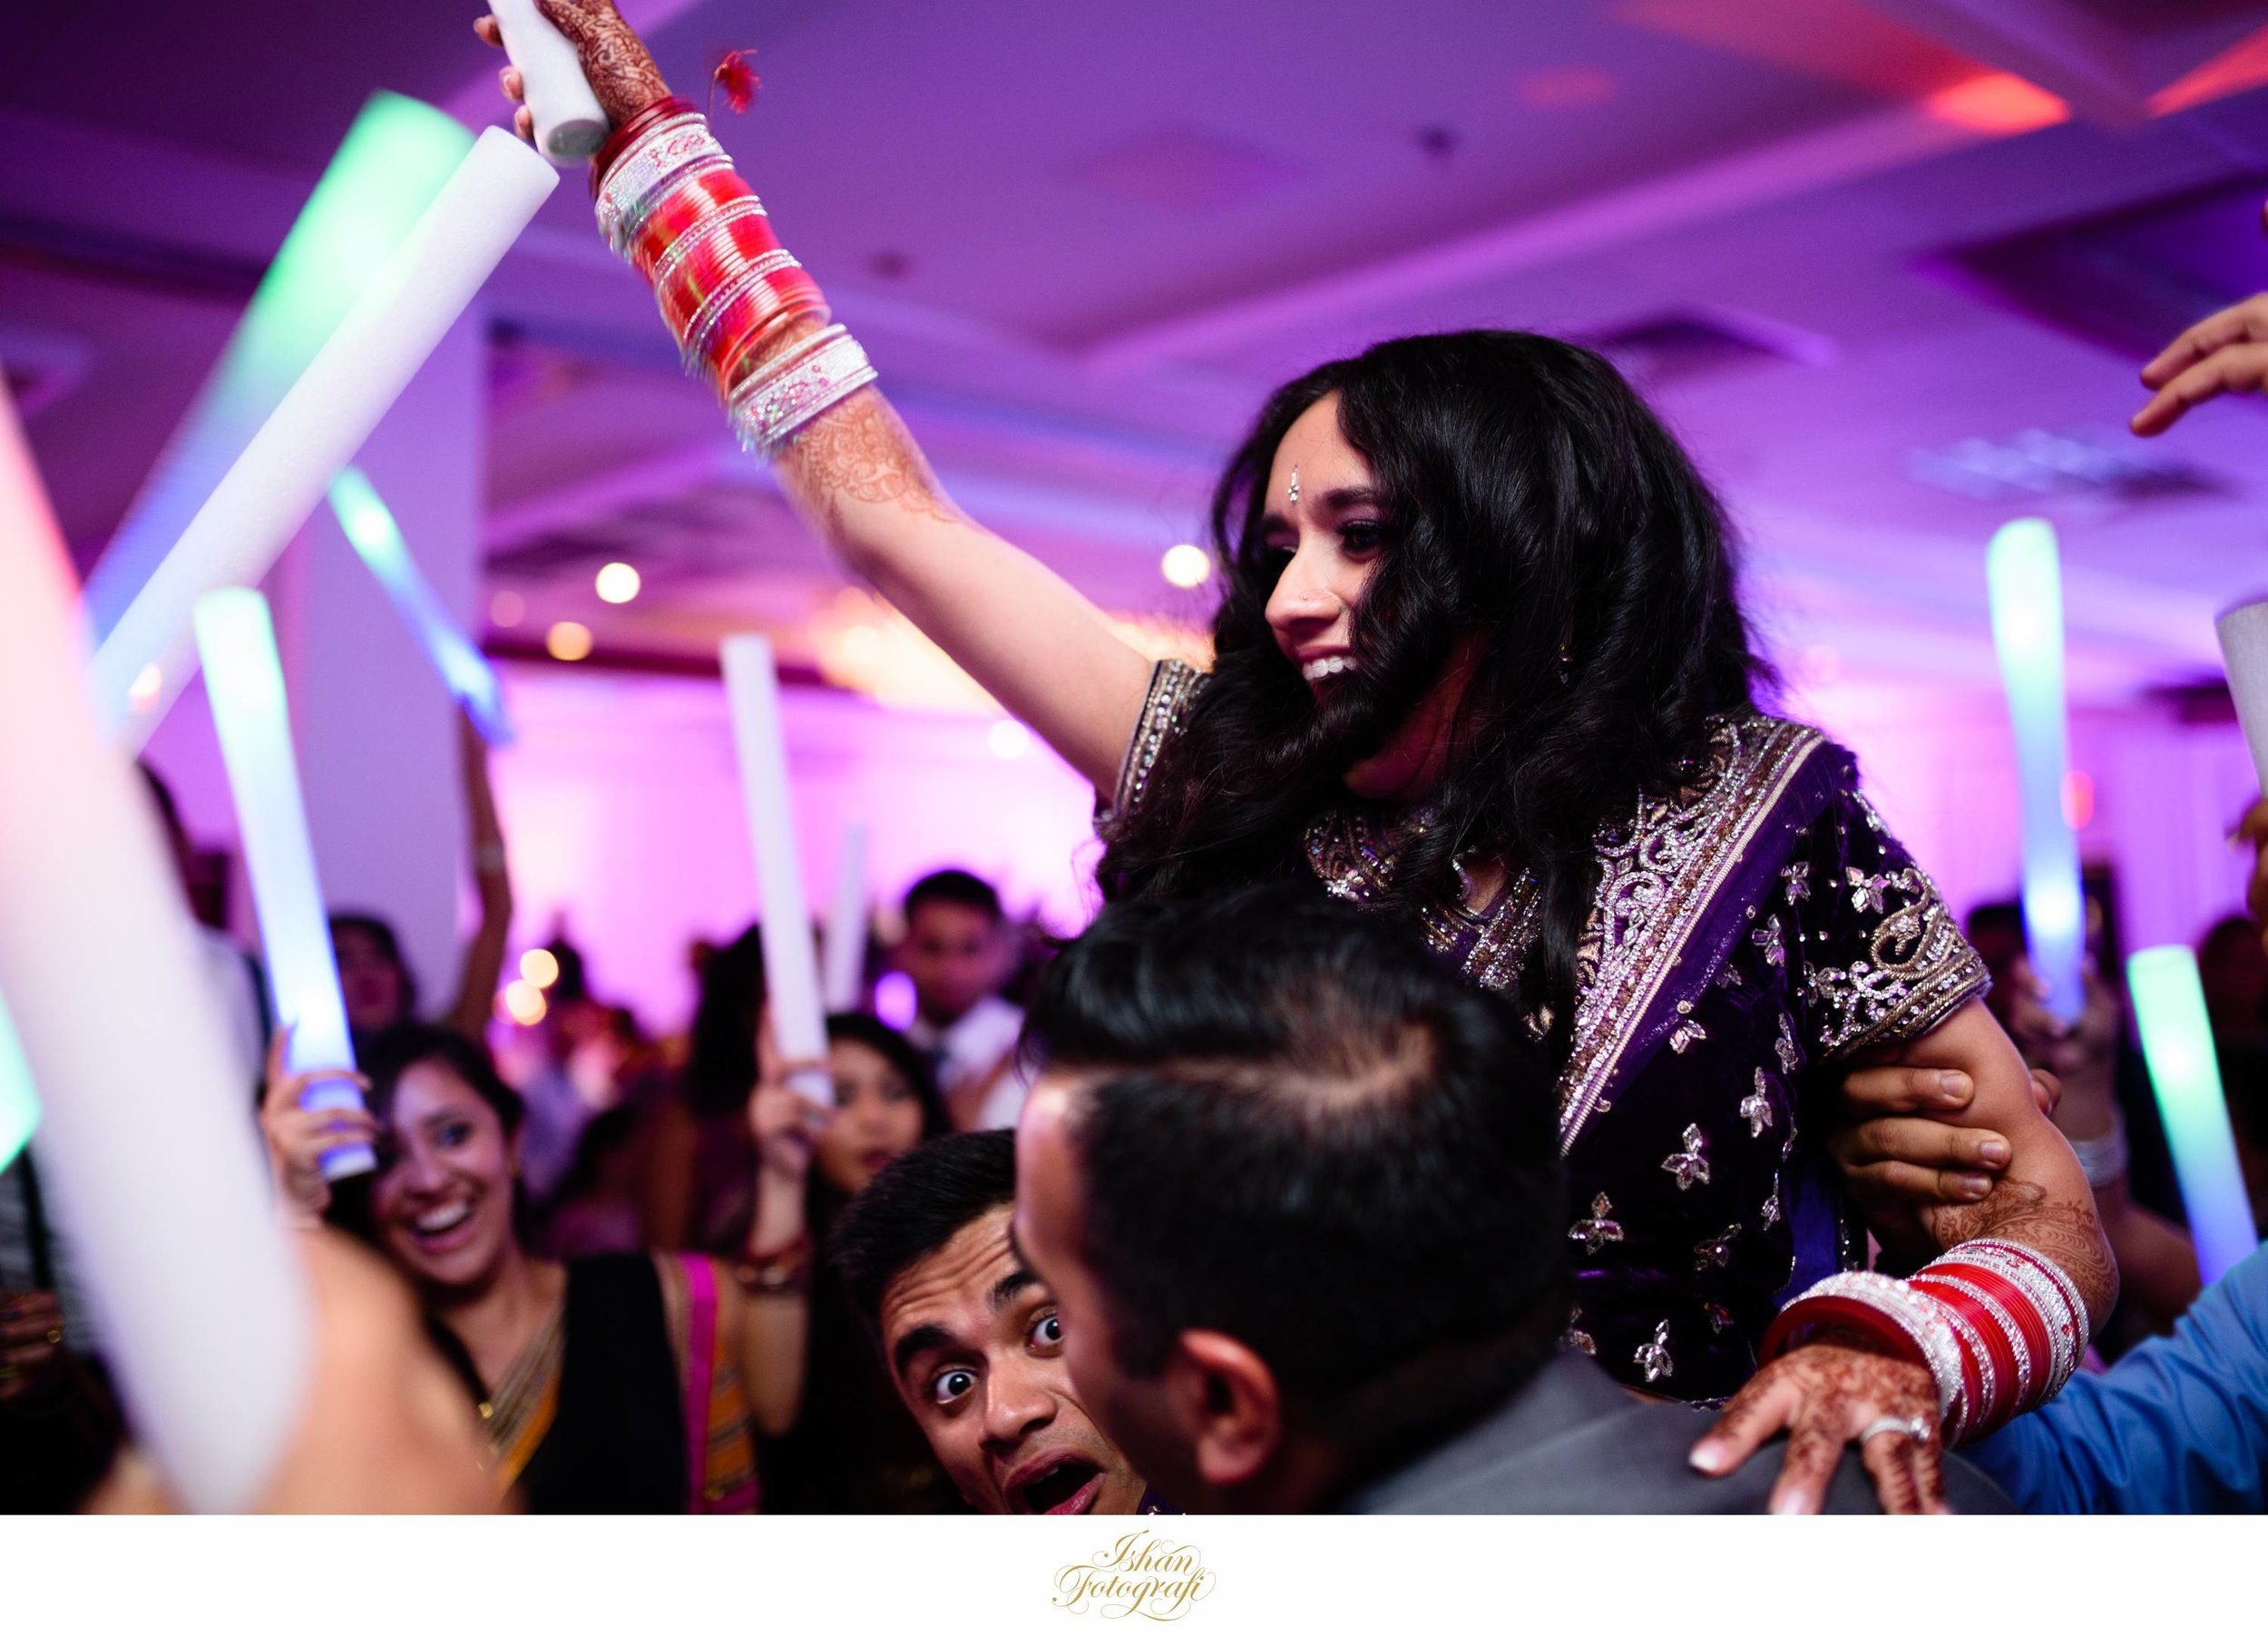 The Bride during a wedding reception being lifted by her brothers. This is very similar to the Hora in Jewish weddings.